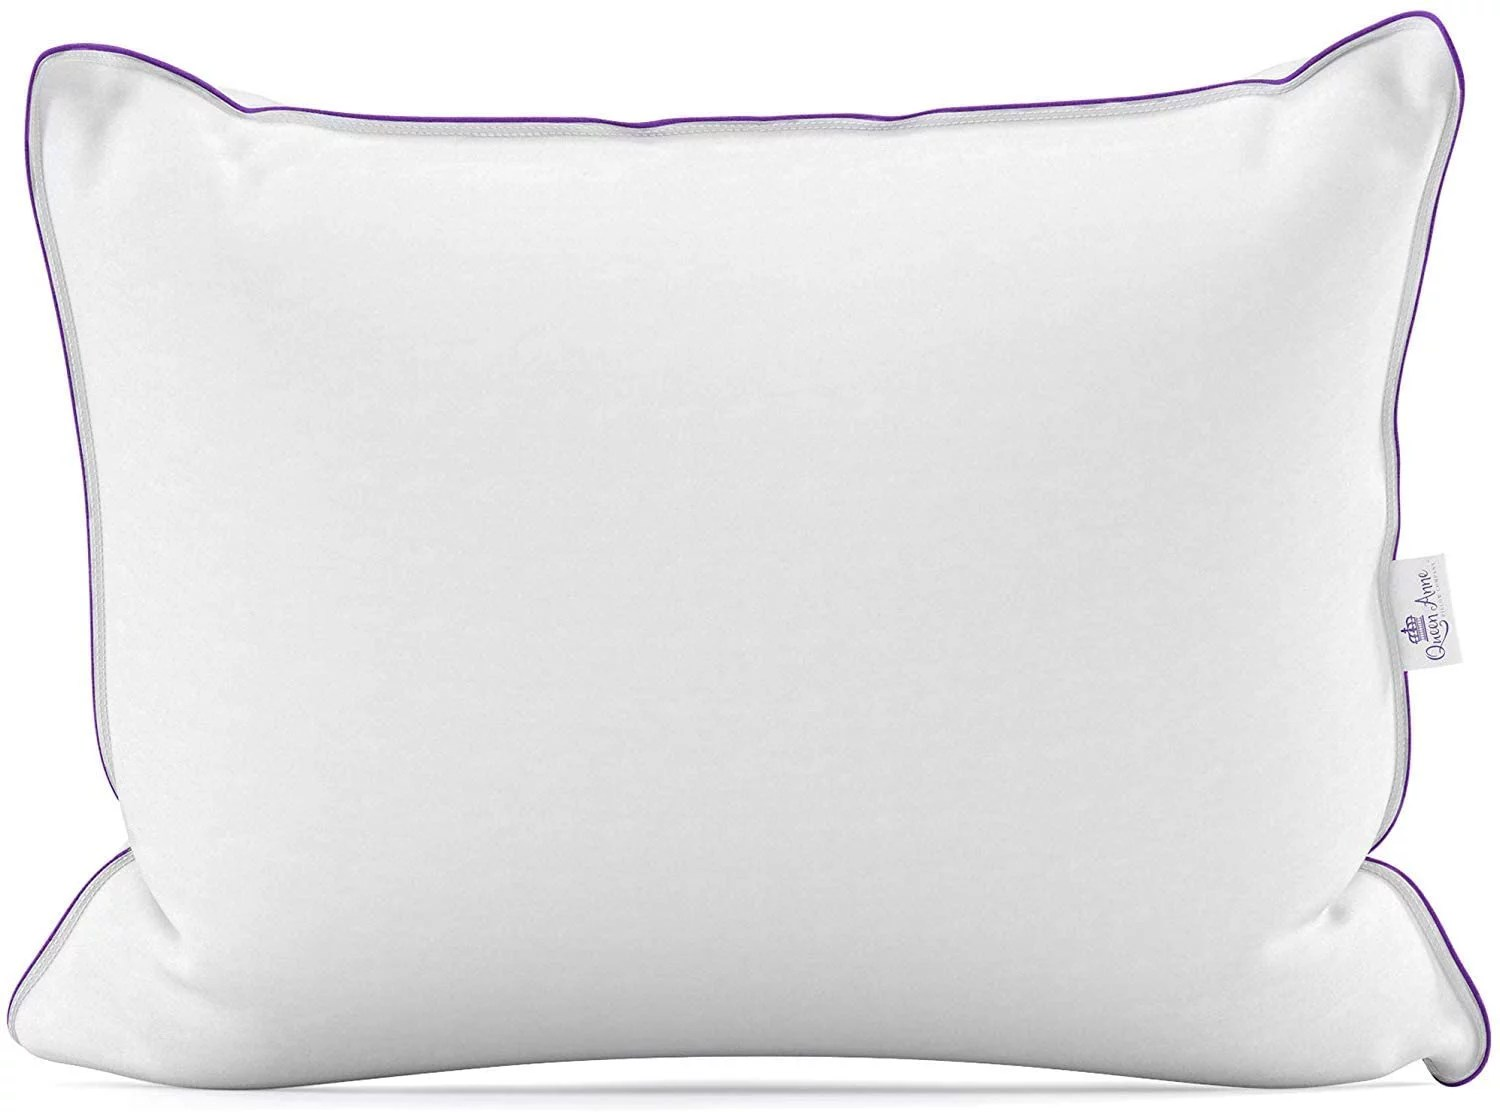 the duchess queen anne pillow company s luxury goose down and feather pillow 25 down 75 feather bed pillow king size 20x36 medium fill